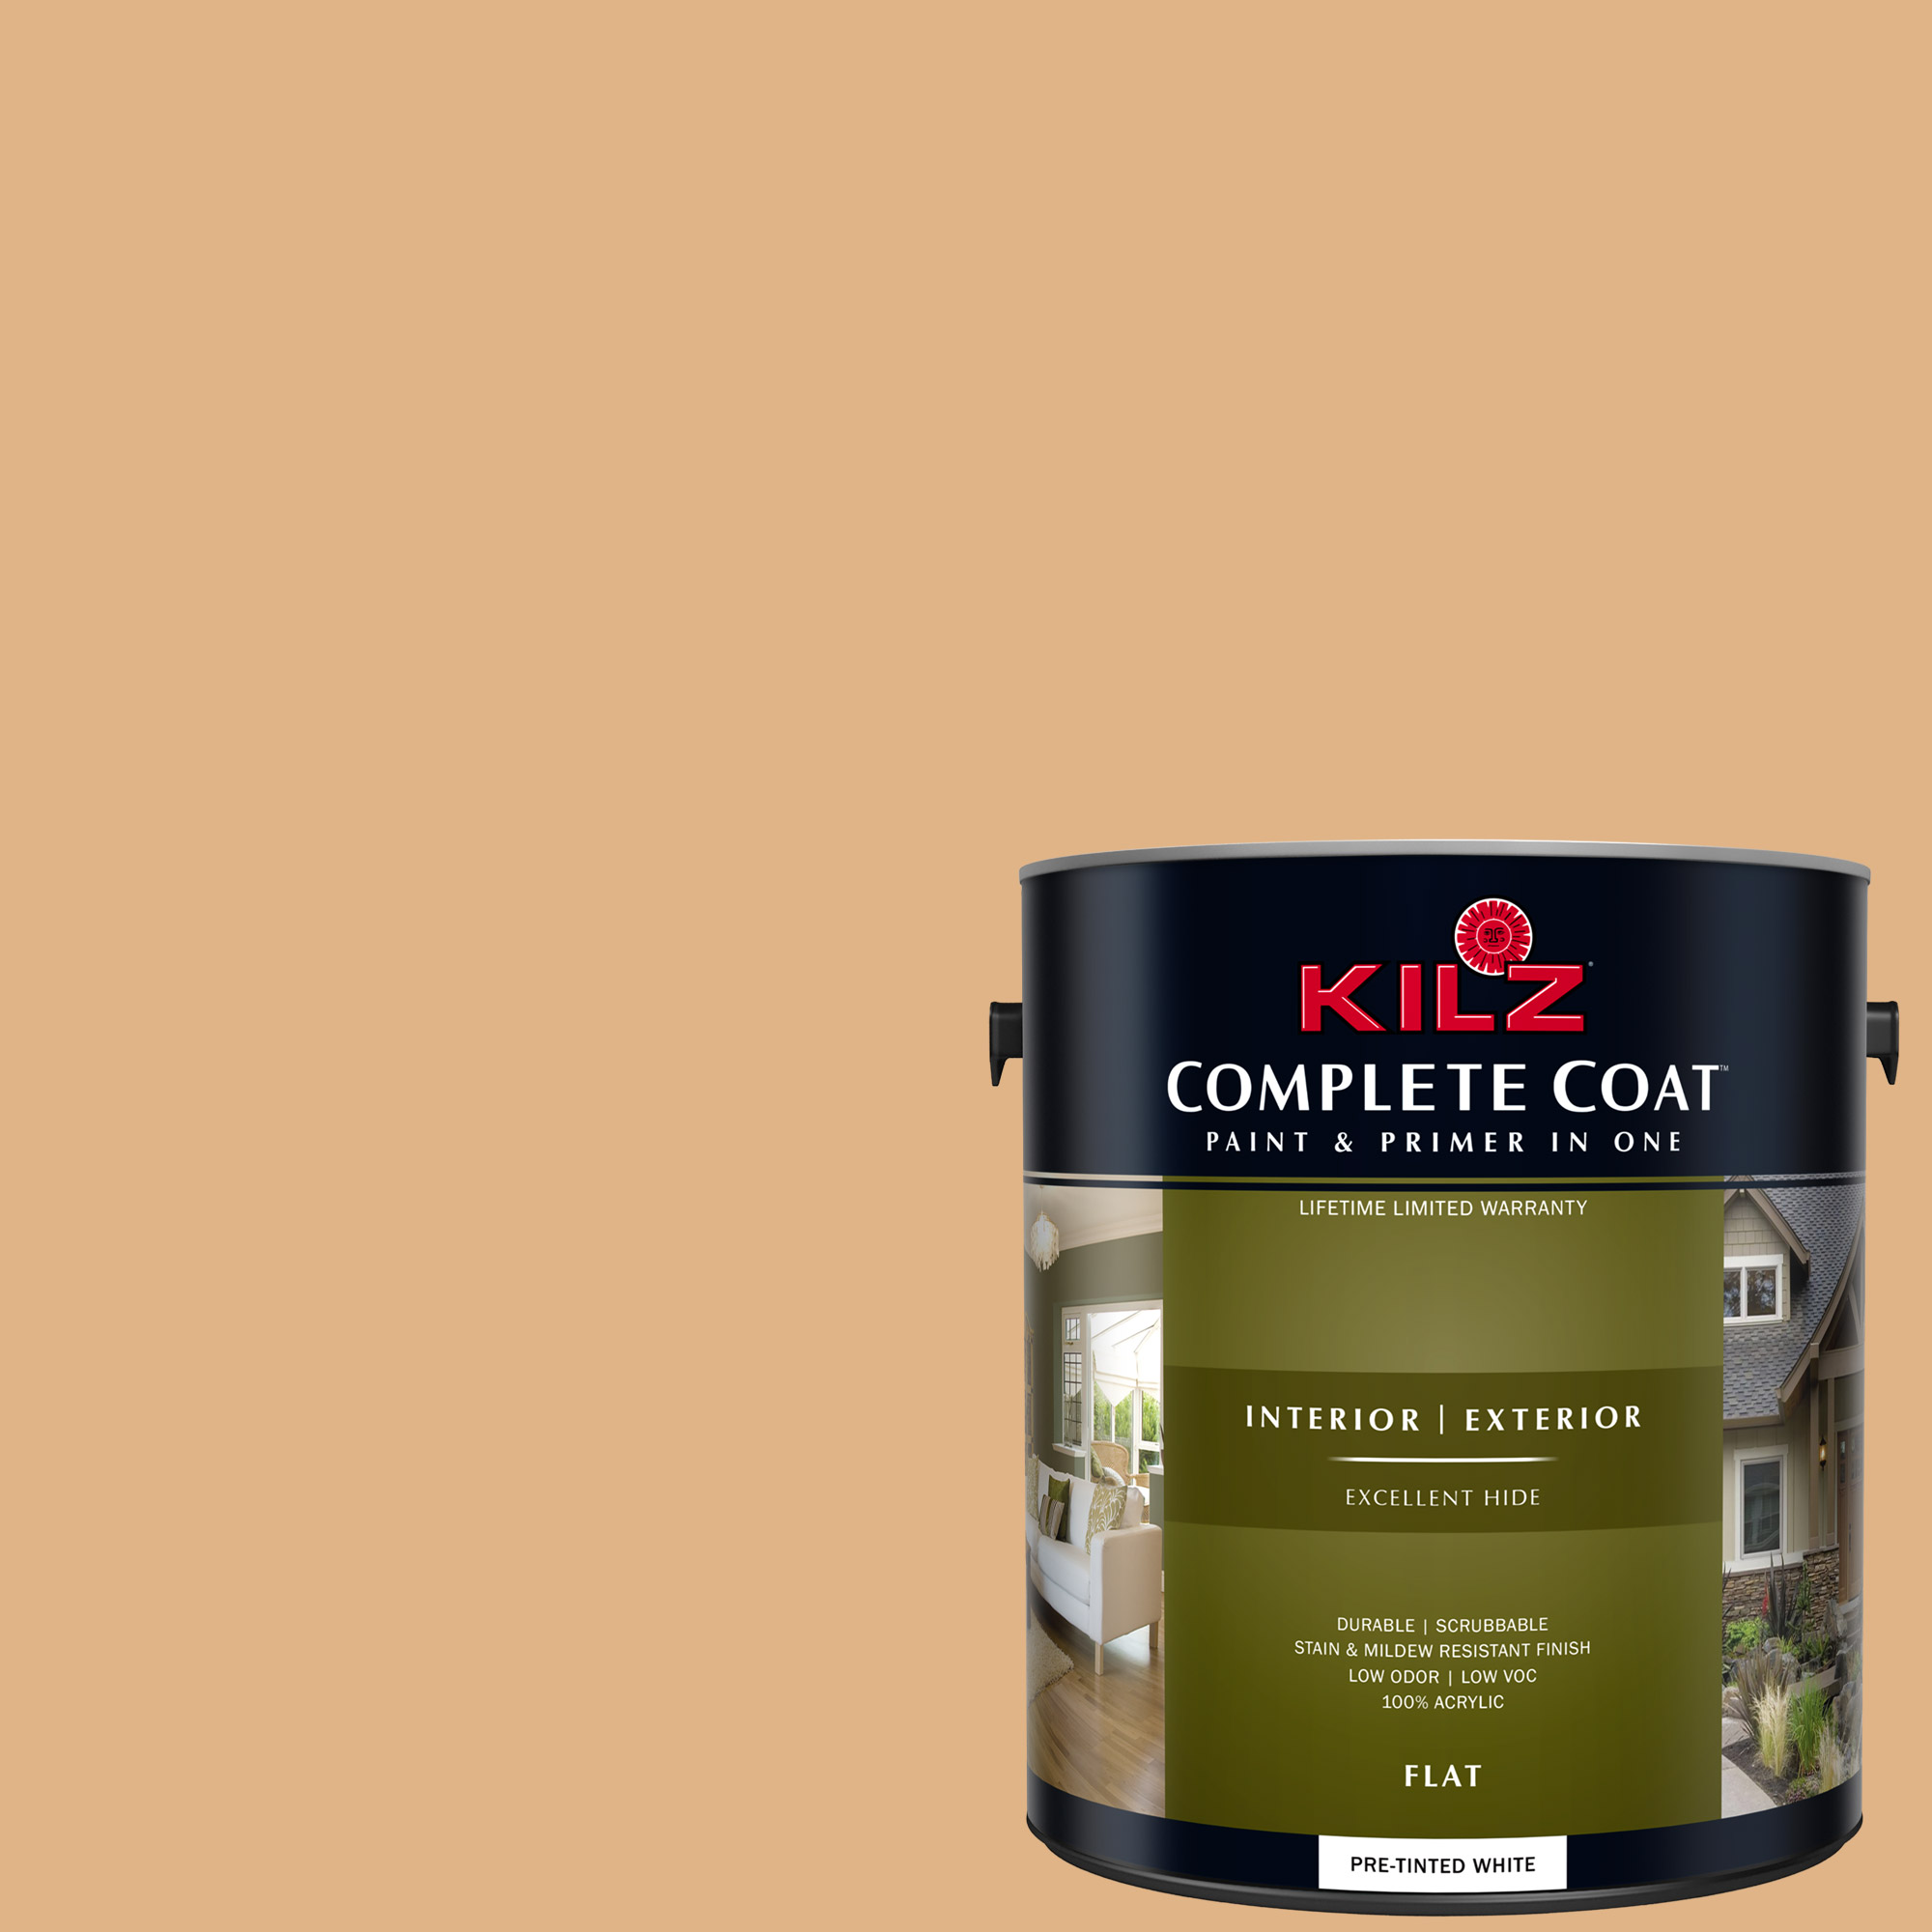 KILZ COMPLETE COAT Interior/Exterior Paint & Primer in One #LD130-01 Antiquarian Brass